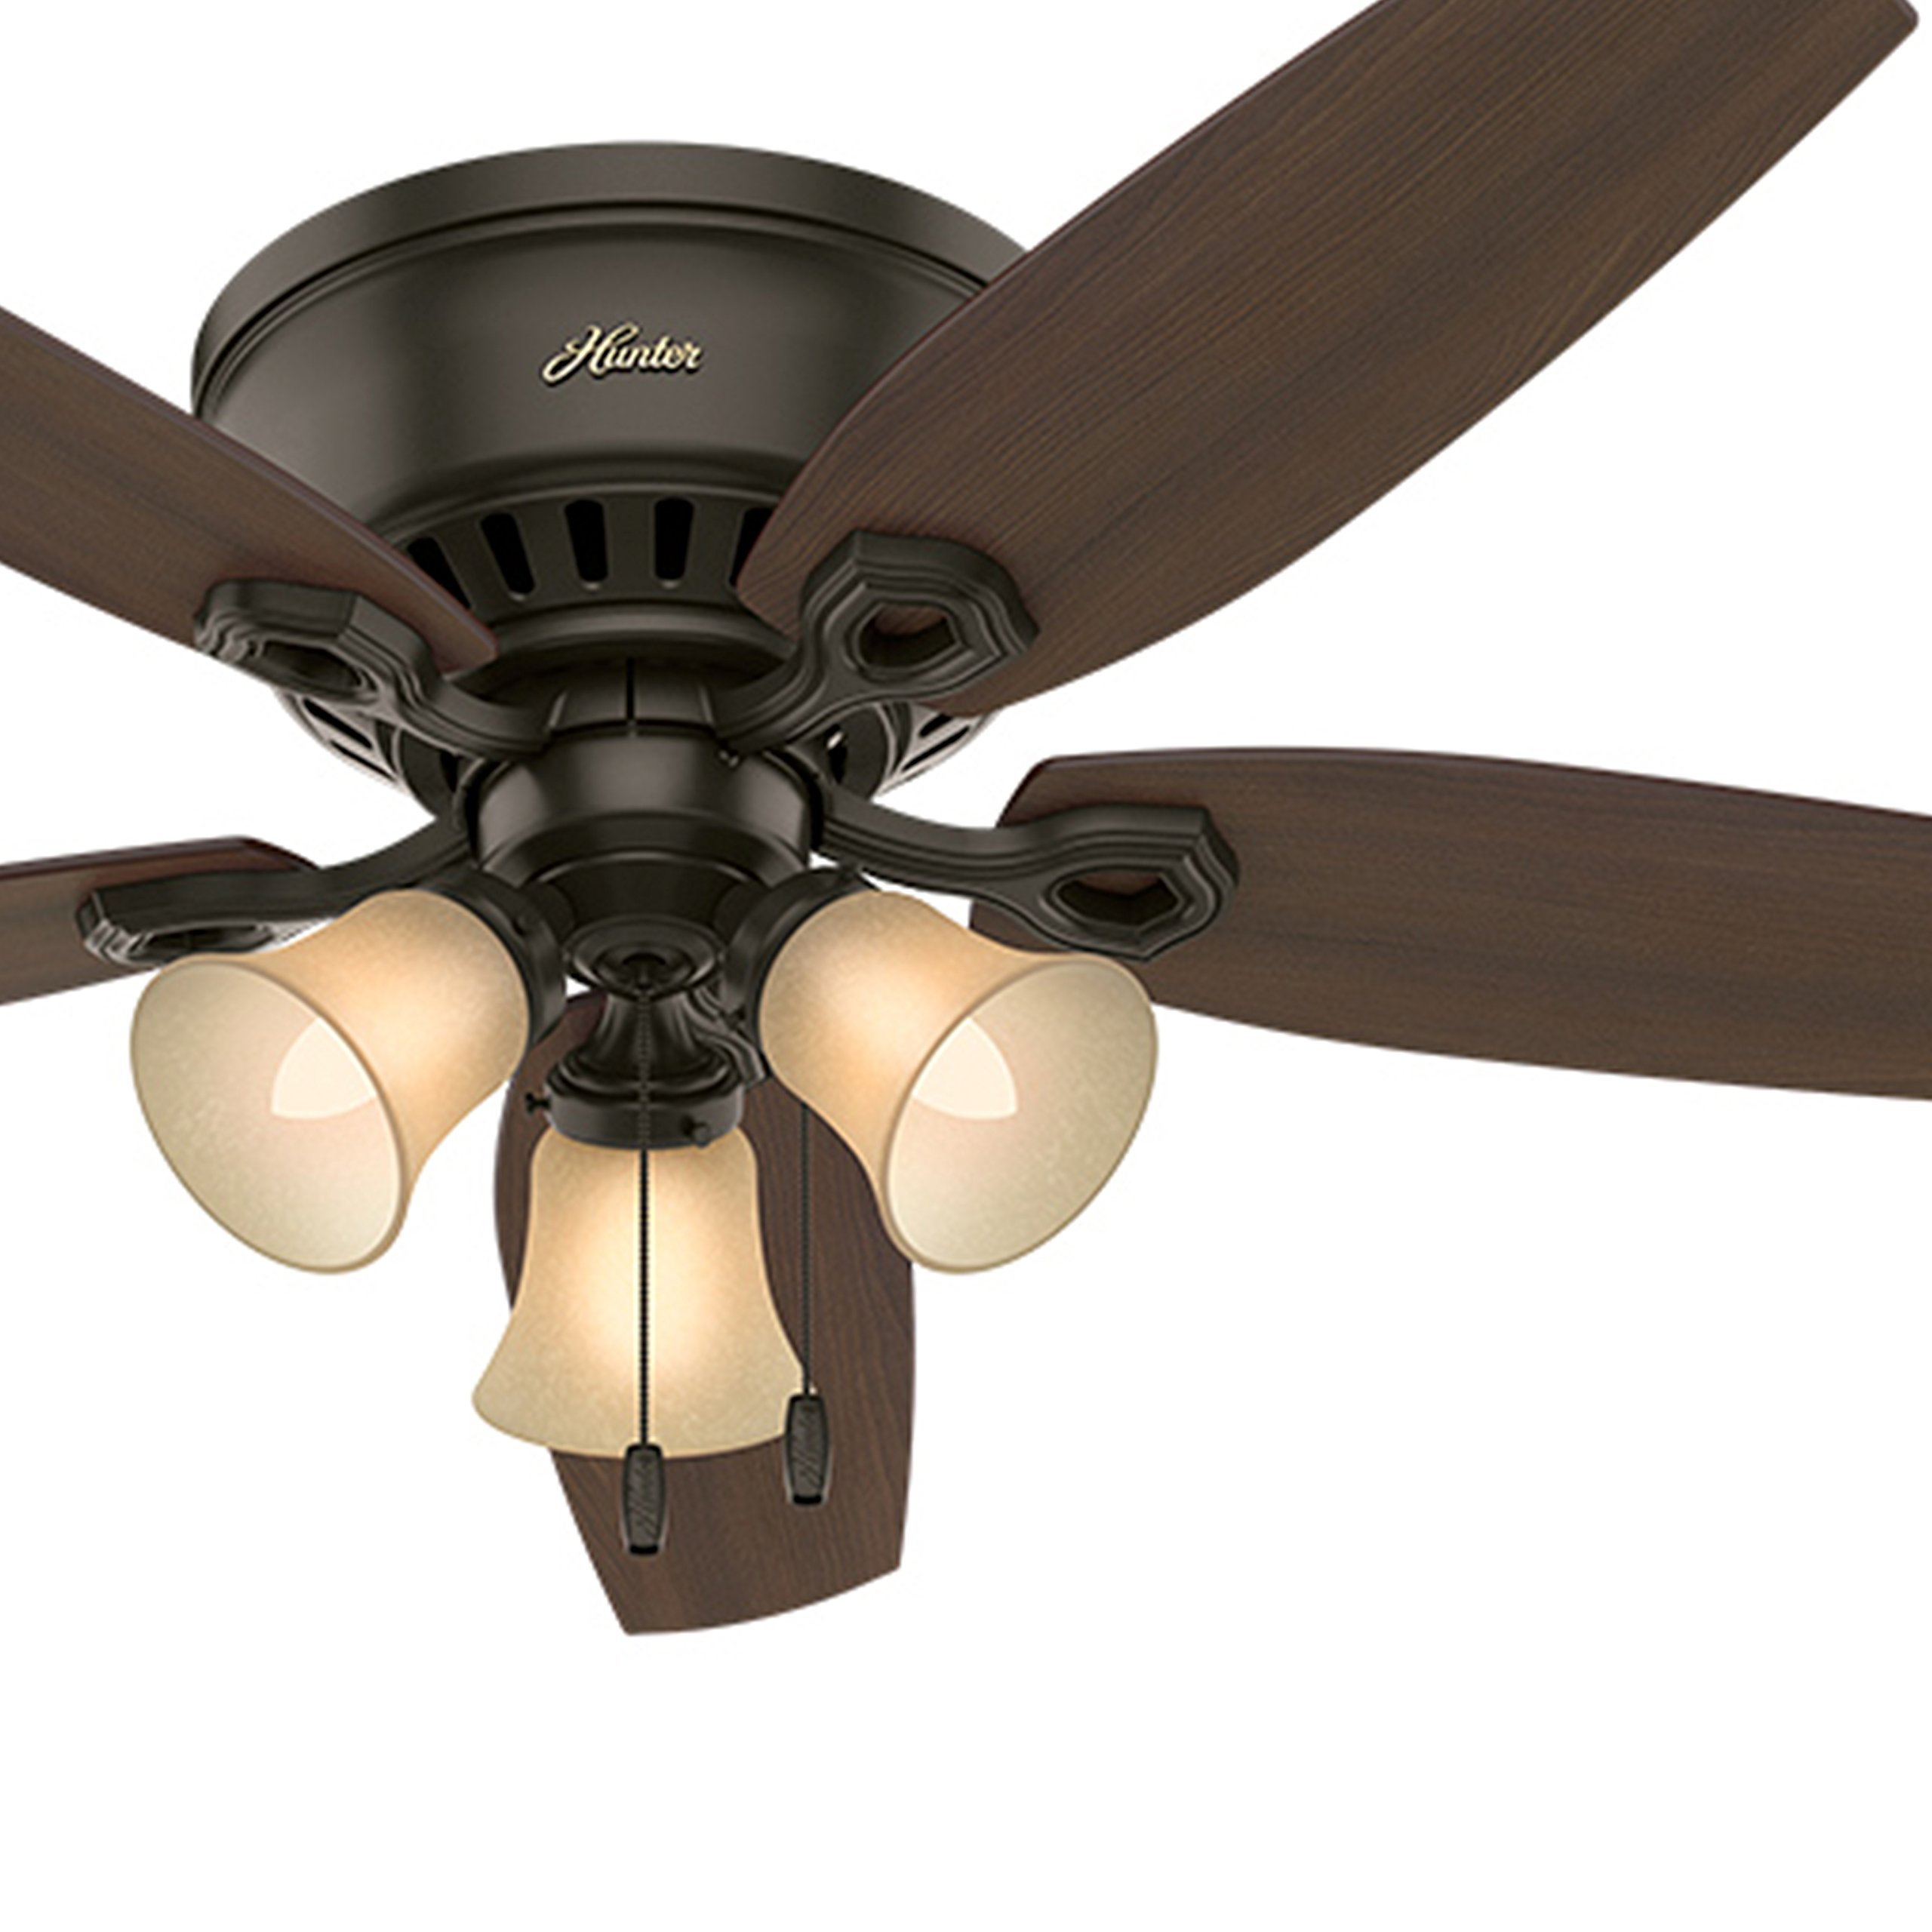 Hunter Fan 52'' Low Profile Ceiling Fan in New Bronze with Toffee Glass Light Kit, 5 Blade (Certified Refurbished) by Hunter Fan Company